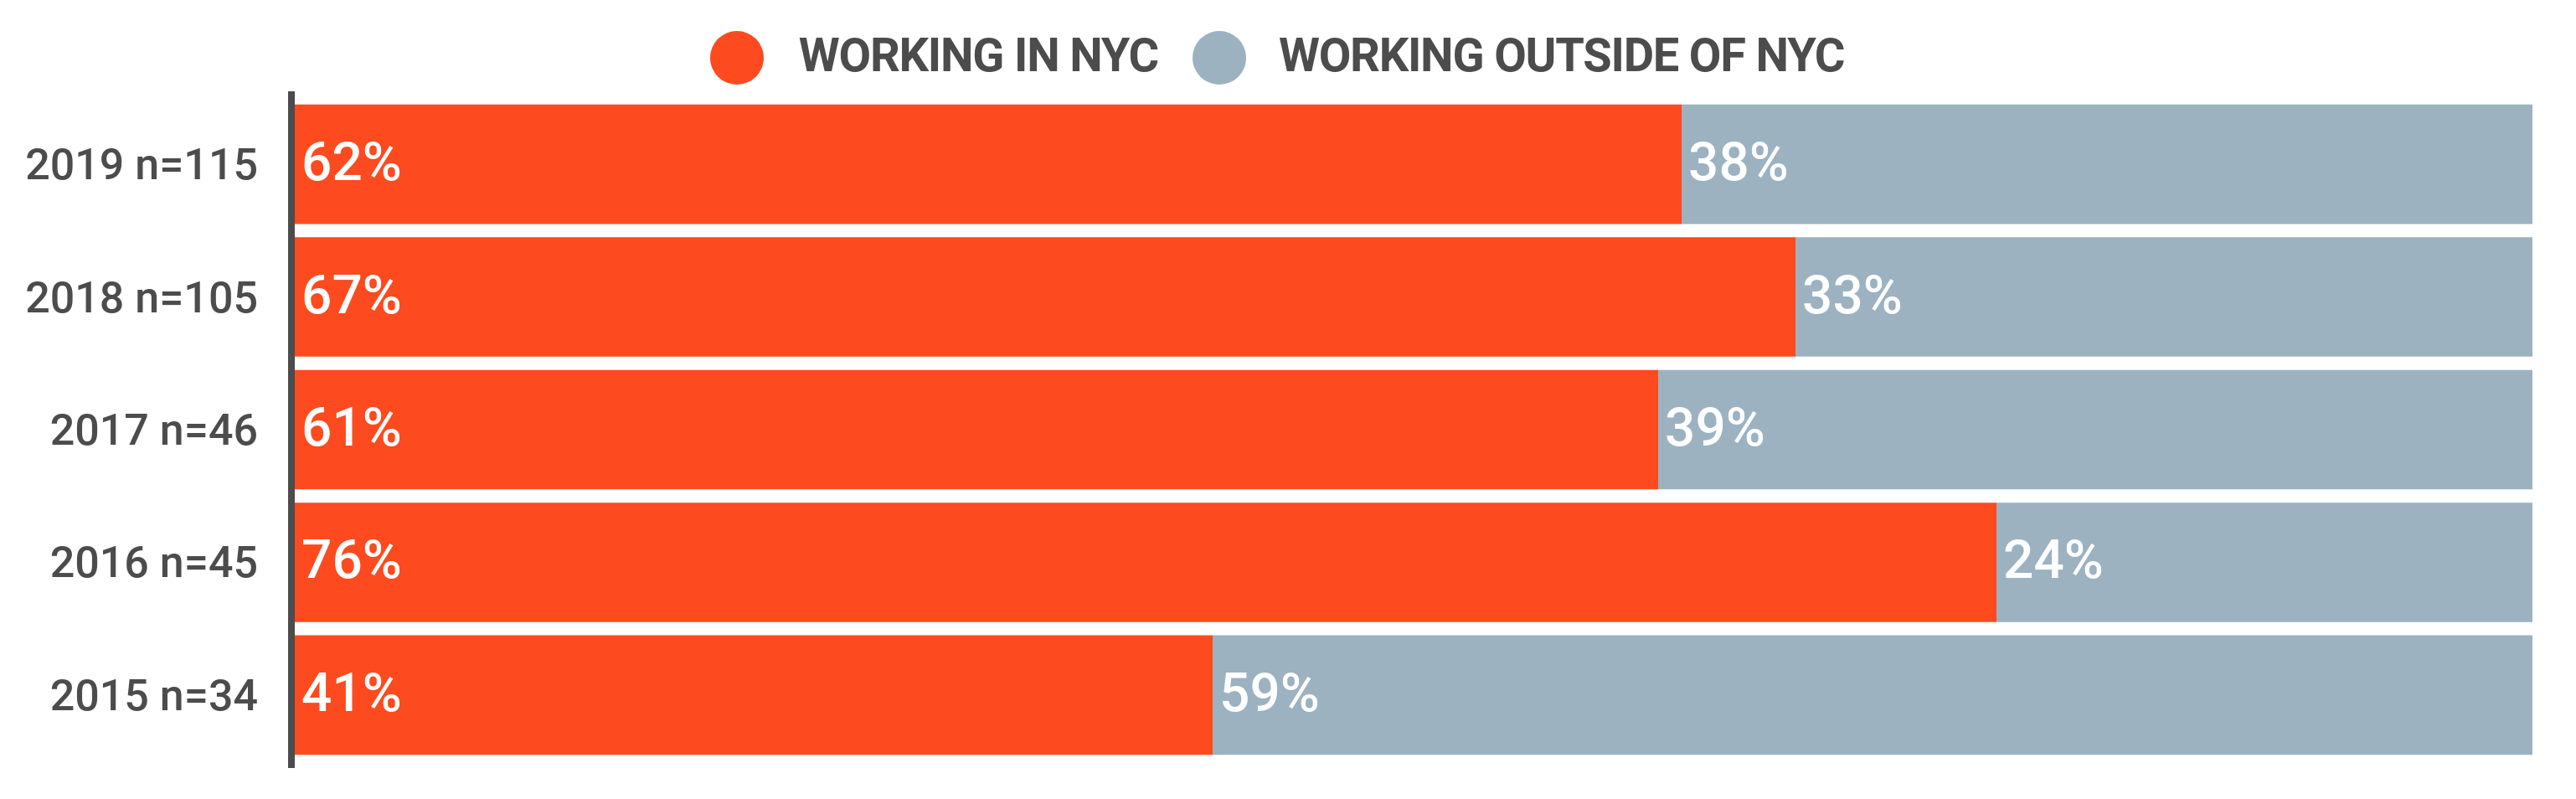 Bar-graph, Post Graduation Working Location, (2015-2019). For 2019: 62% worked in NYC and 38% worked elsewhere; for 2018: 67% worked in NYC and 33% worked elsewhere; for 2017, 61% worked in NYC and 39% worked elsewhere; for 2016, 76% worked in NYC and 24% worked elsewhere; and for 2015, 41% worked in NYC and 59% worked elsewhere.